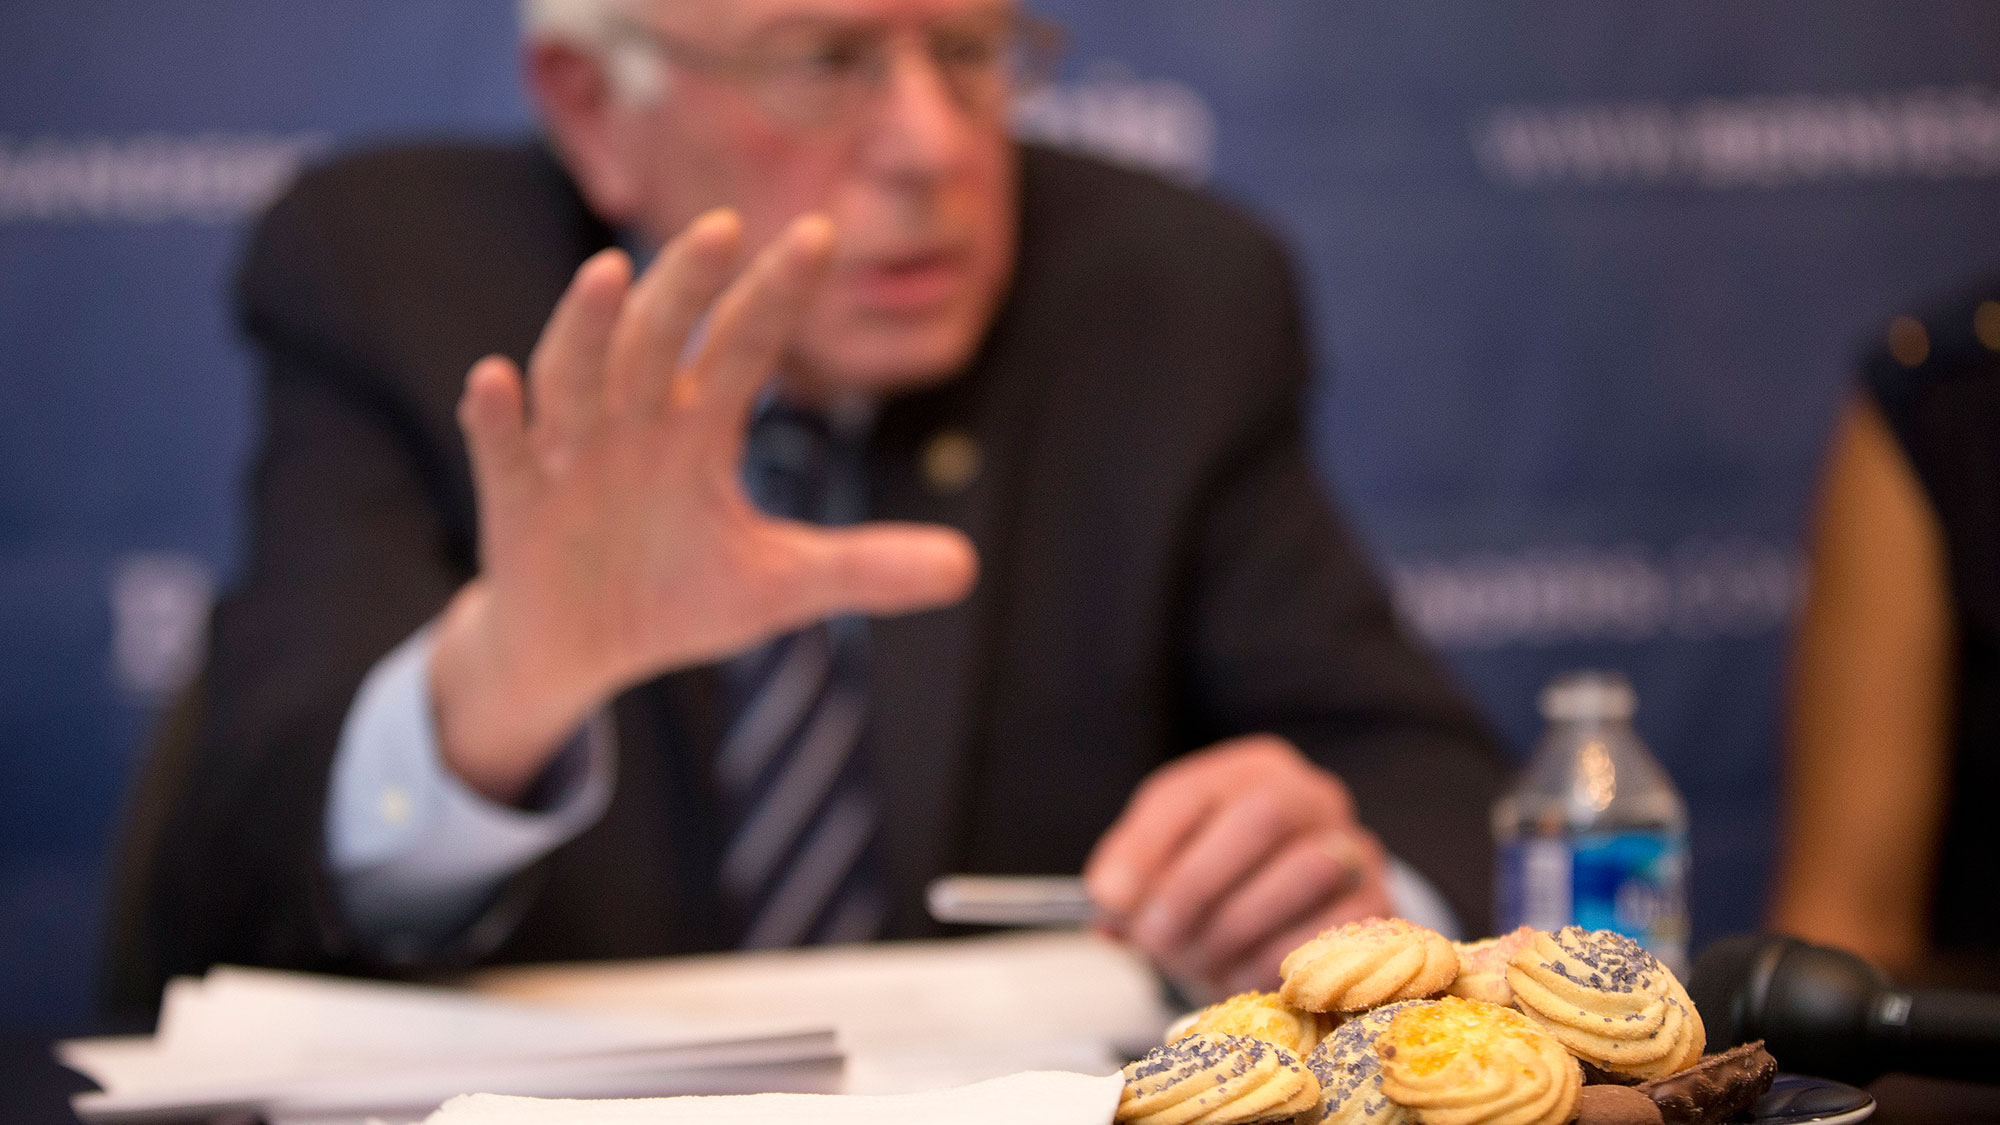 A plate of cookies are seen on the table infront of Democratic presidential candidate, Sen. Bernie Sanders, I-Vt., as he discusses his immigration plan, during a live broadcast from his campaign office in Washington, Monday, Dec. 7, 2015. (AP Photo/Pablo Martinez Monsivais)